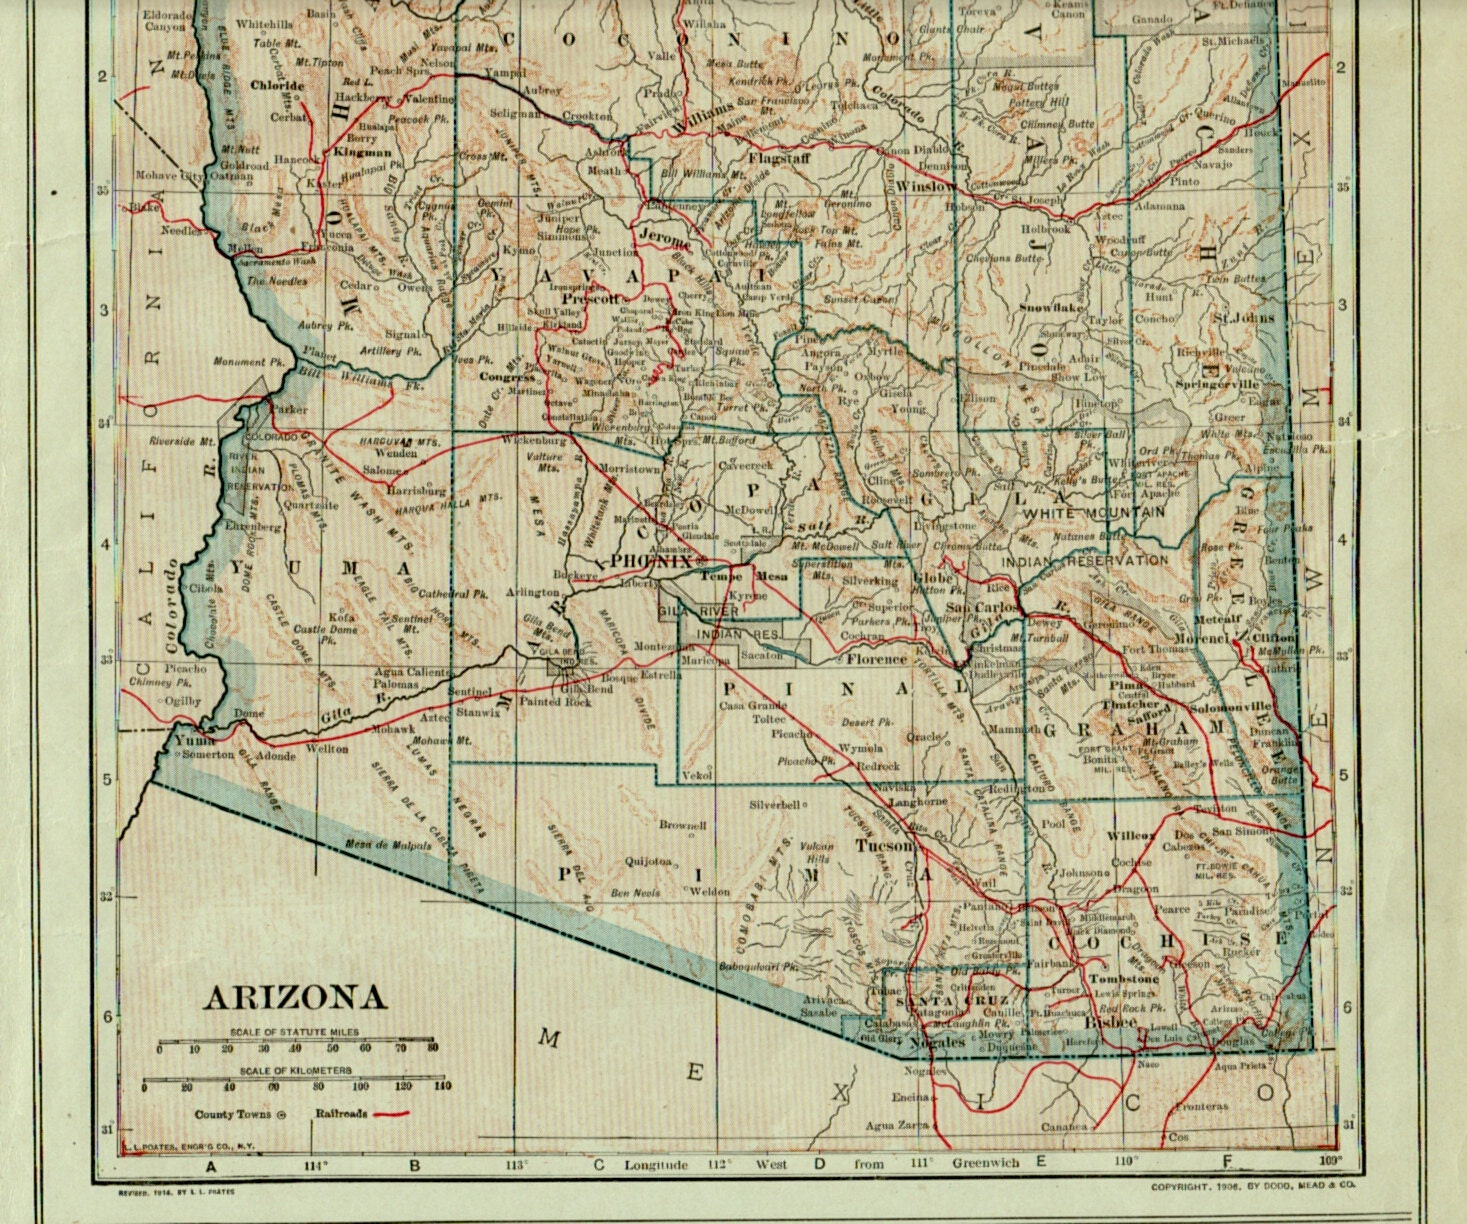 It's just a picture of Invaluable Printable Arizona Map